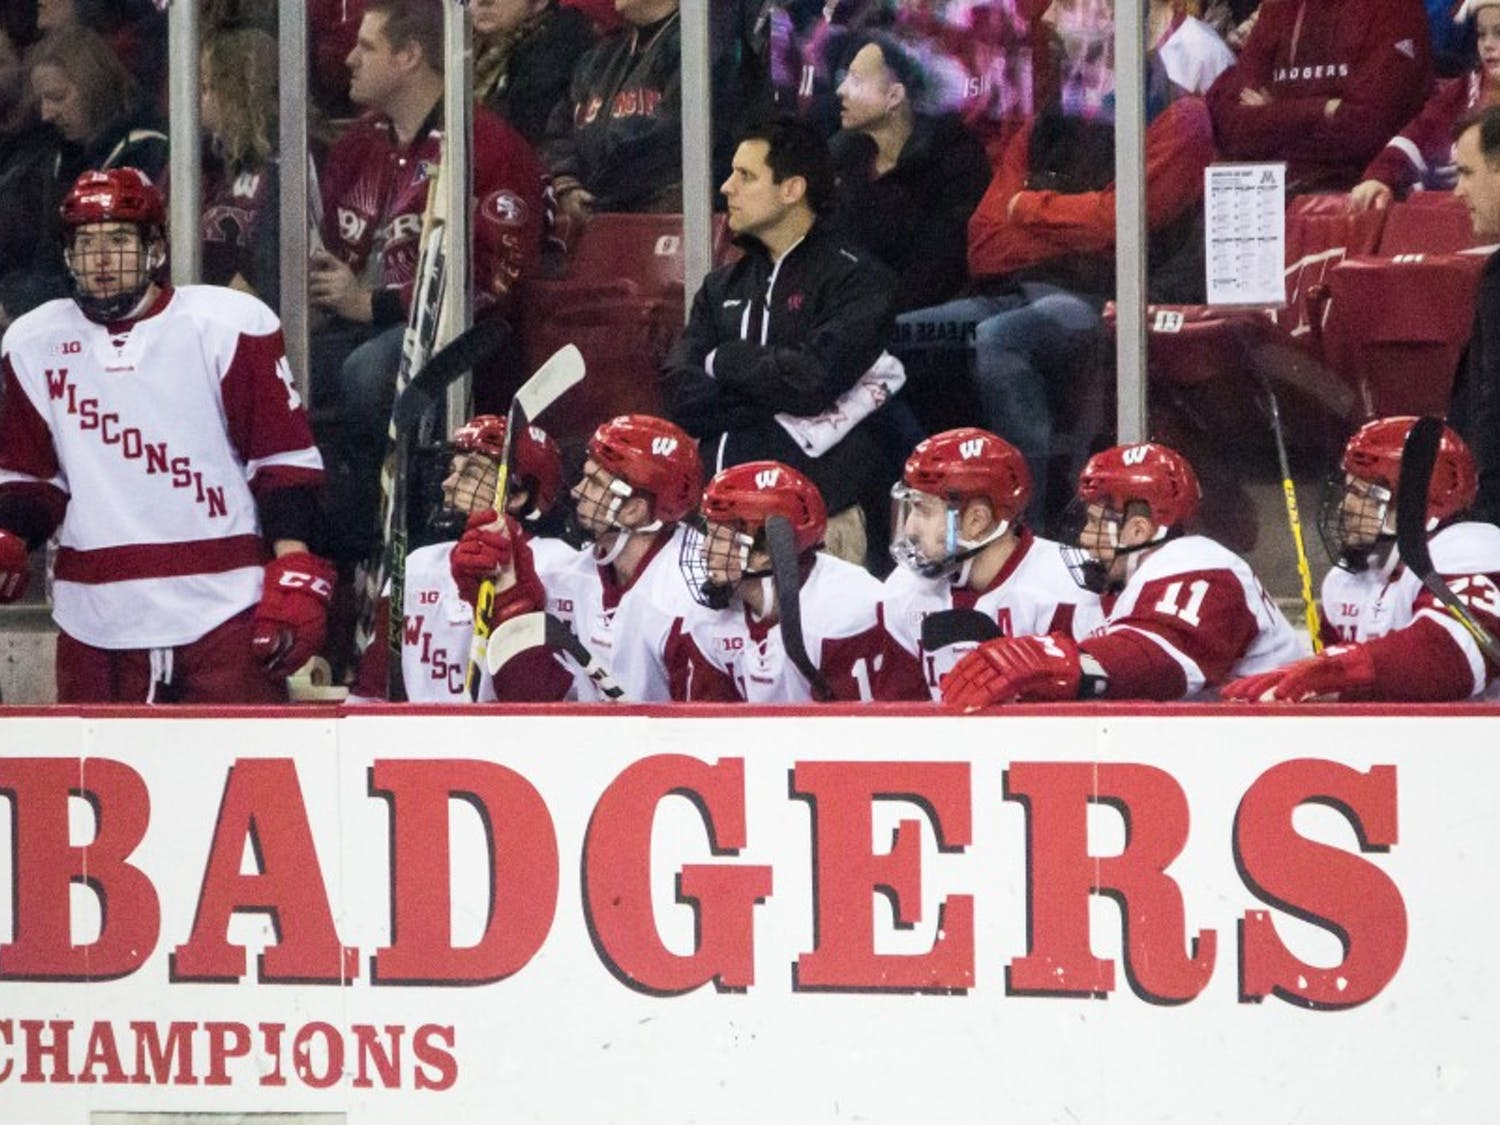 Both the Badger men's hockey and basketball teams treated fans in New York to thrilling wins at Madison Square Garden.